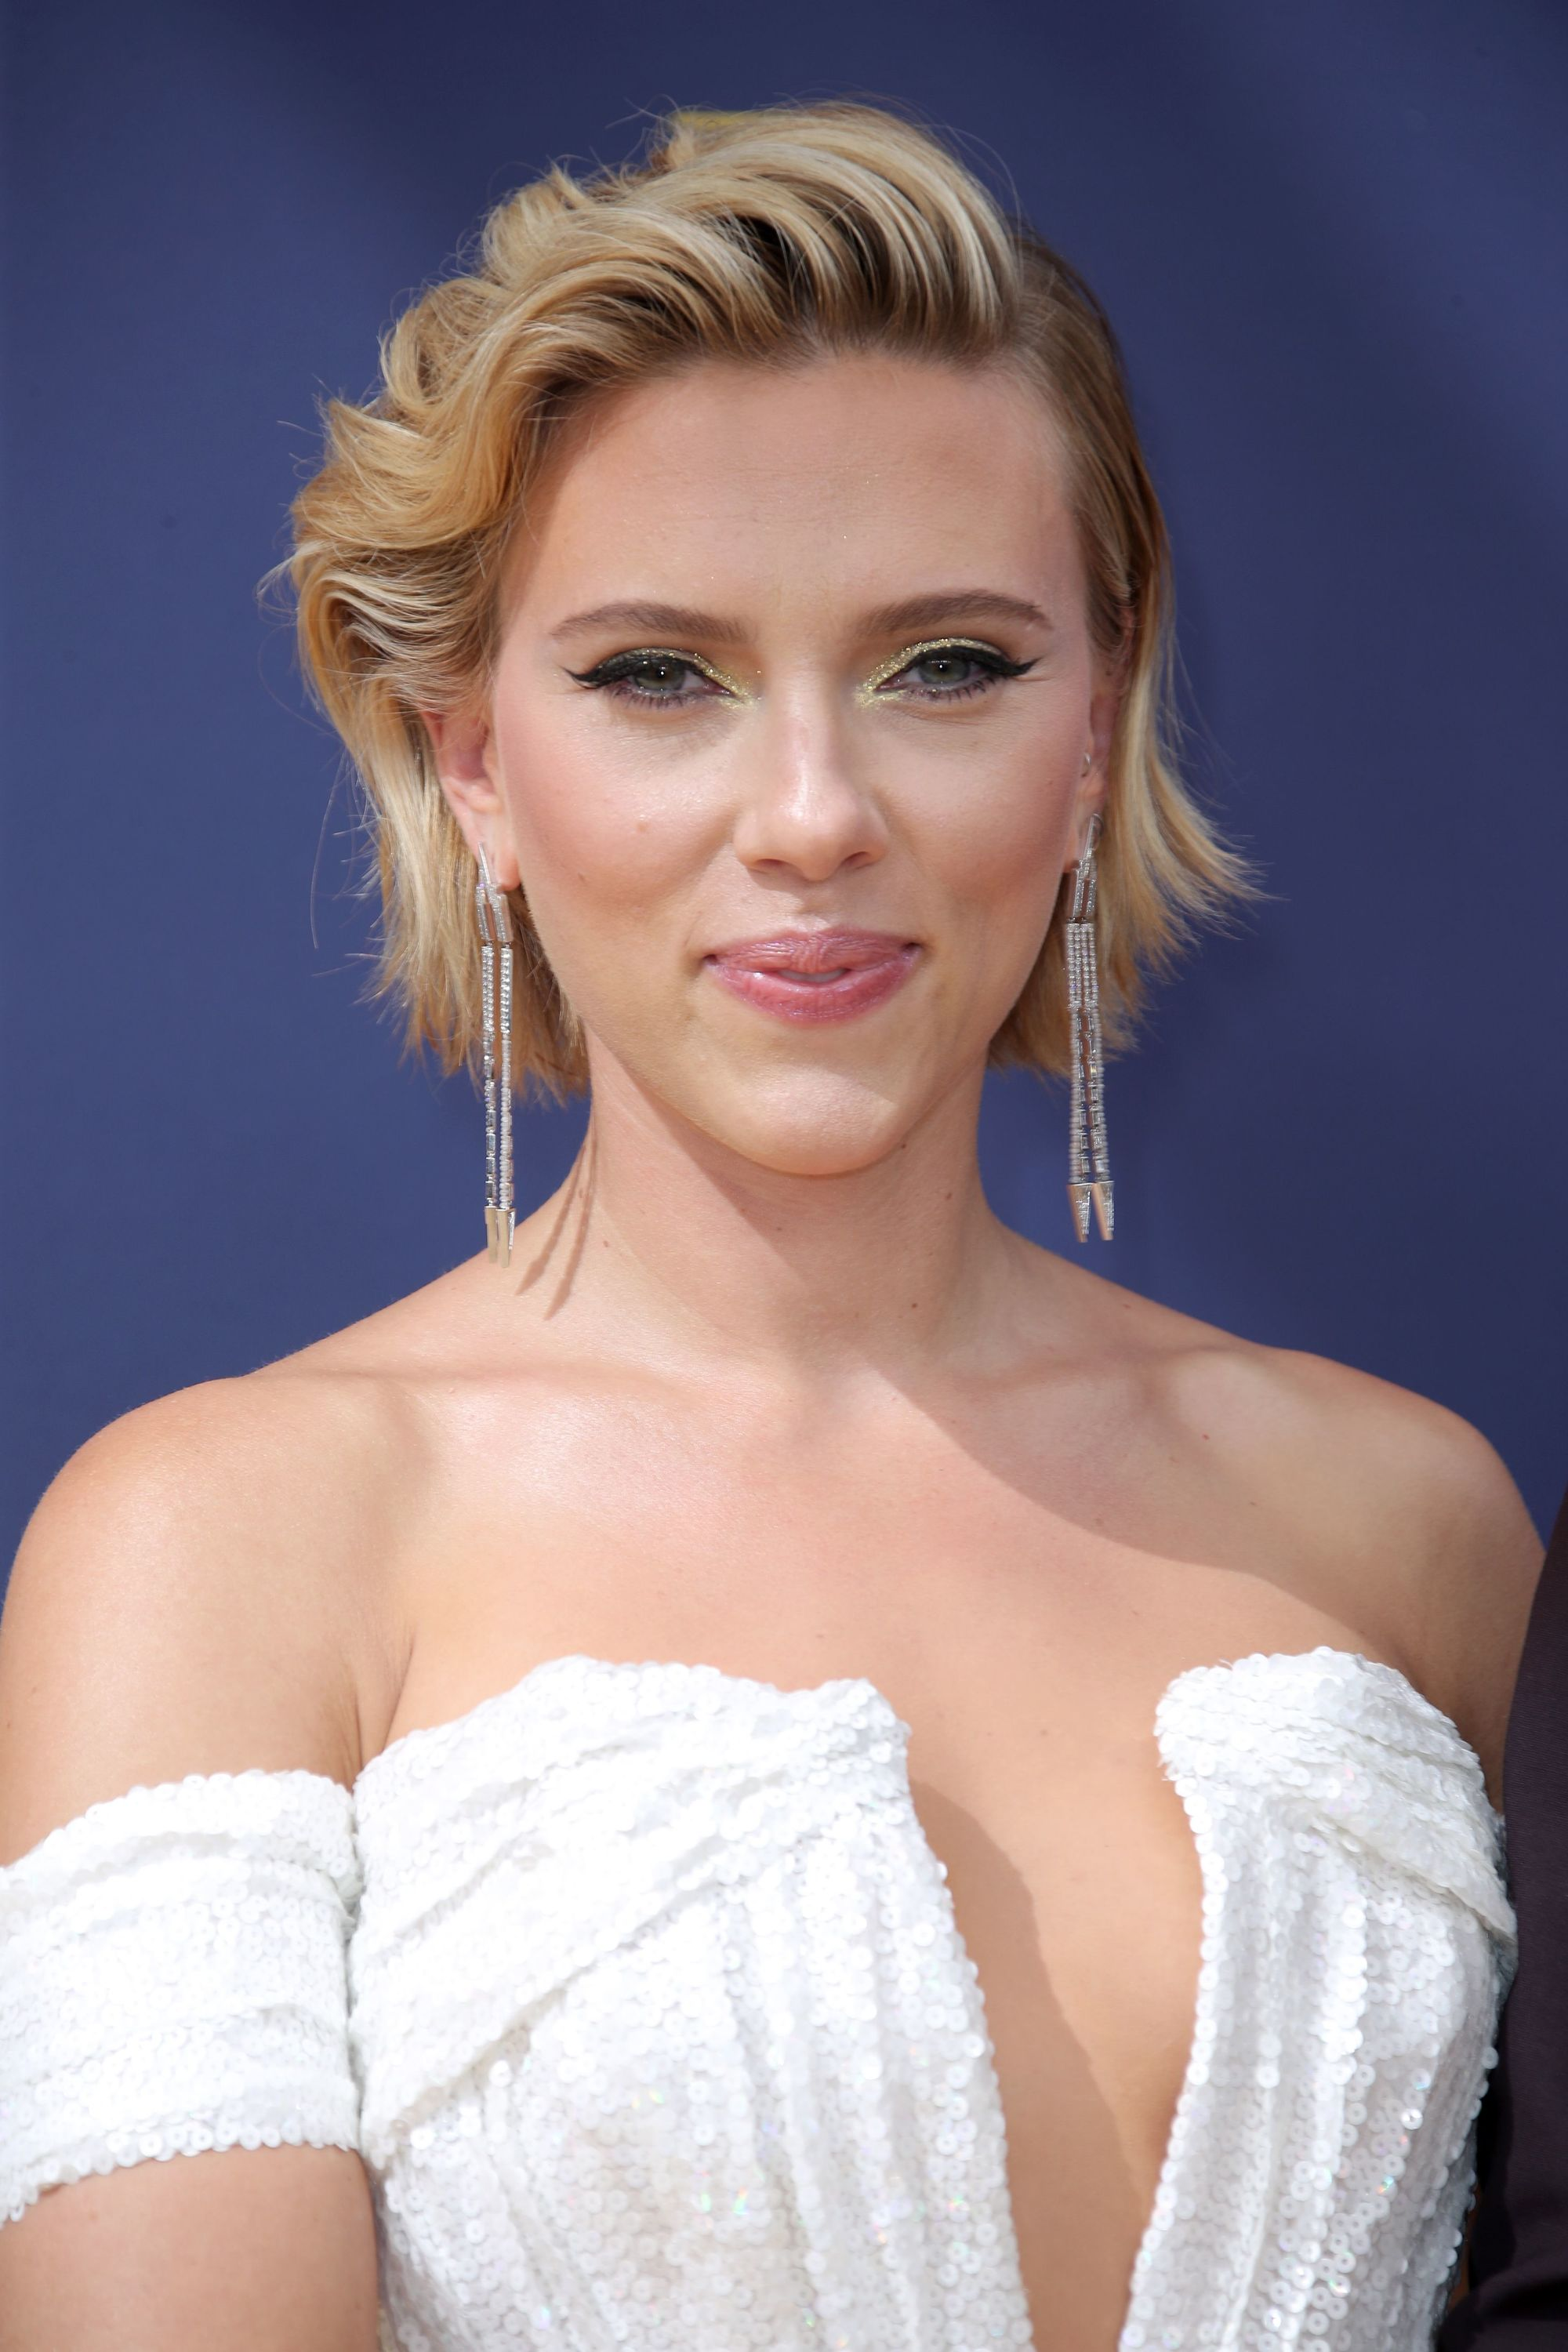 Emmy Awards 2018: Close up shot of Scarlett Johansson with golden blonde bob styled into undone, swept-back look, wearing drop earrings and a white dress on the red carpet